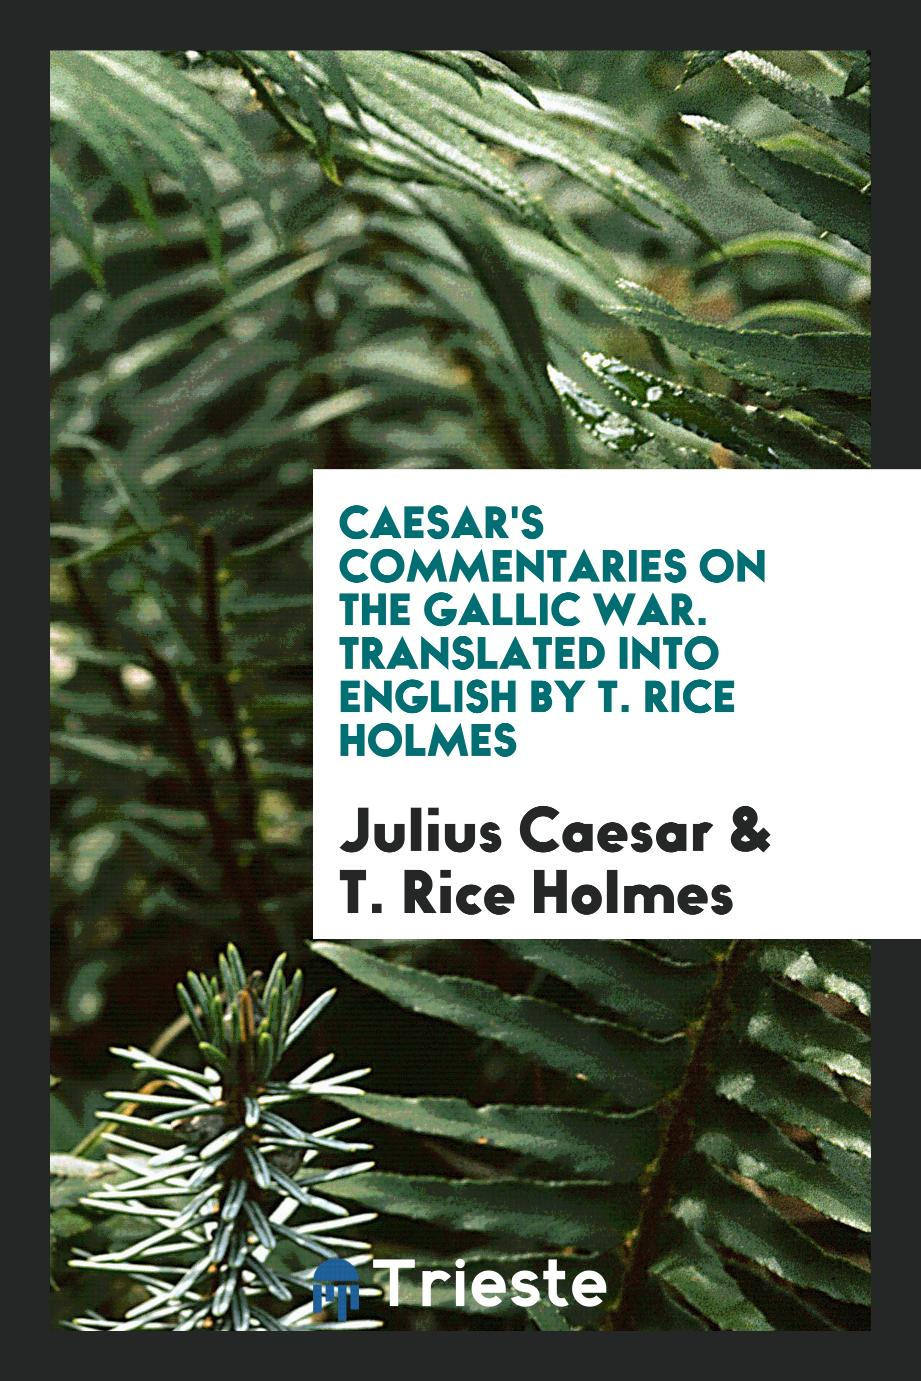 Caesar's Commentaries on the Gallic War. Translated into English by T. Rice Holmes